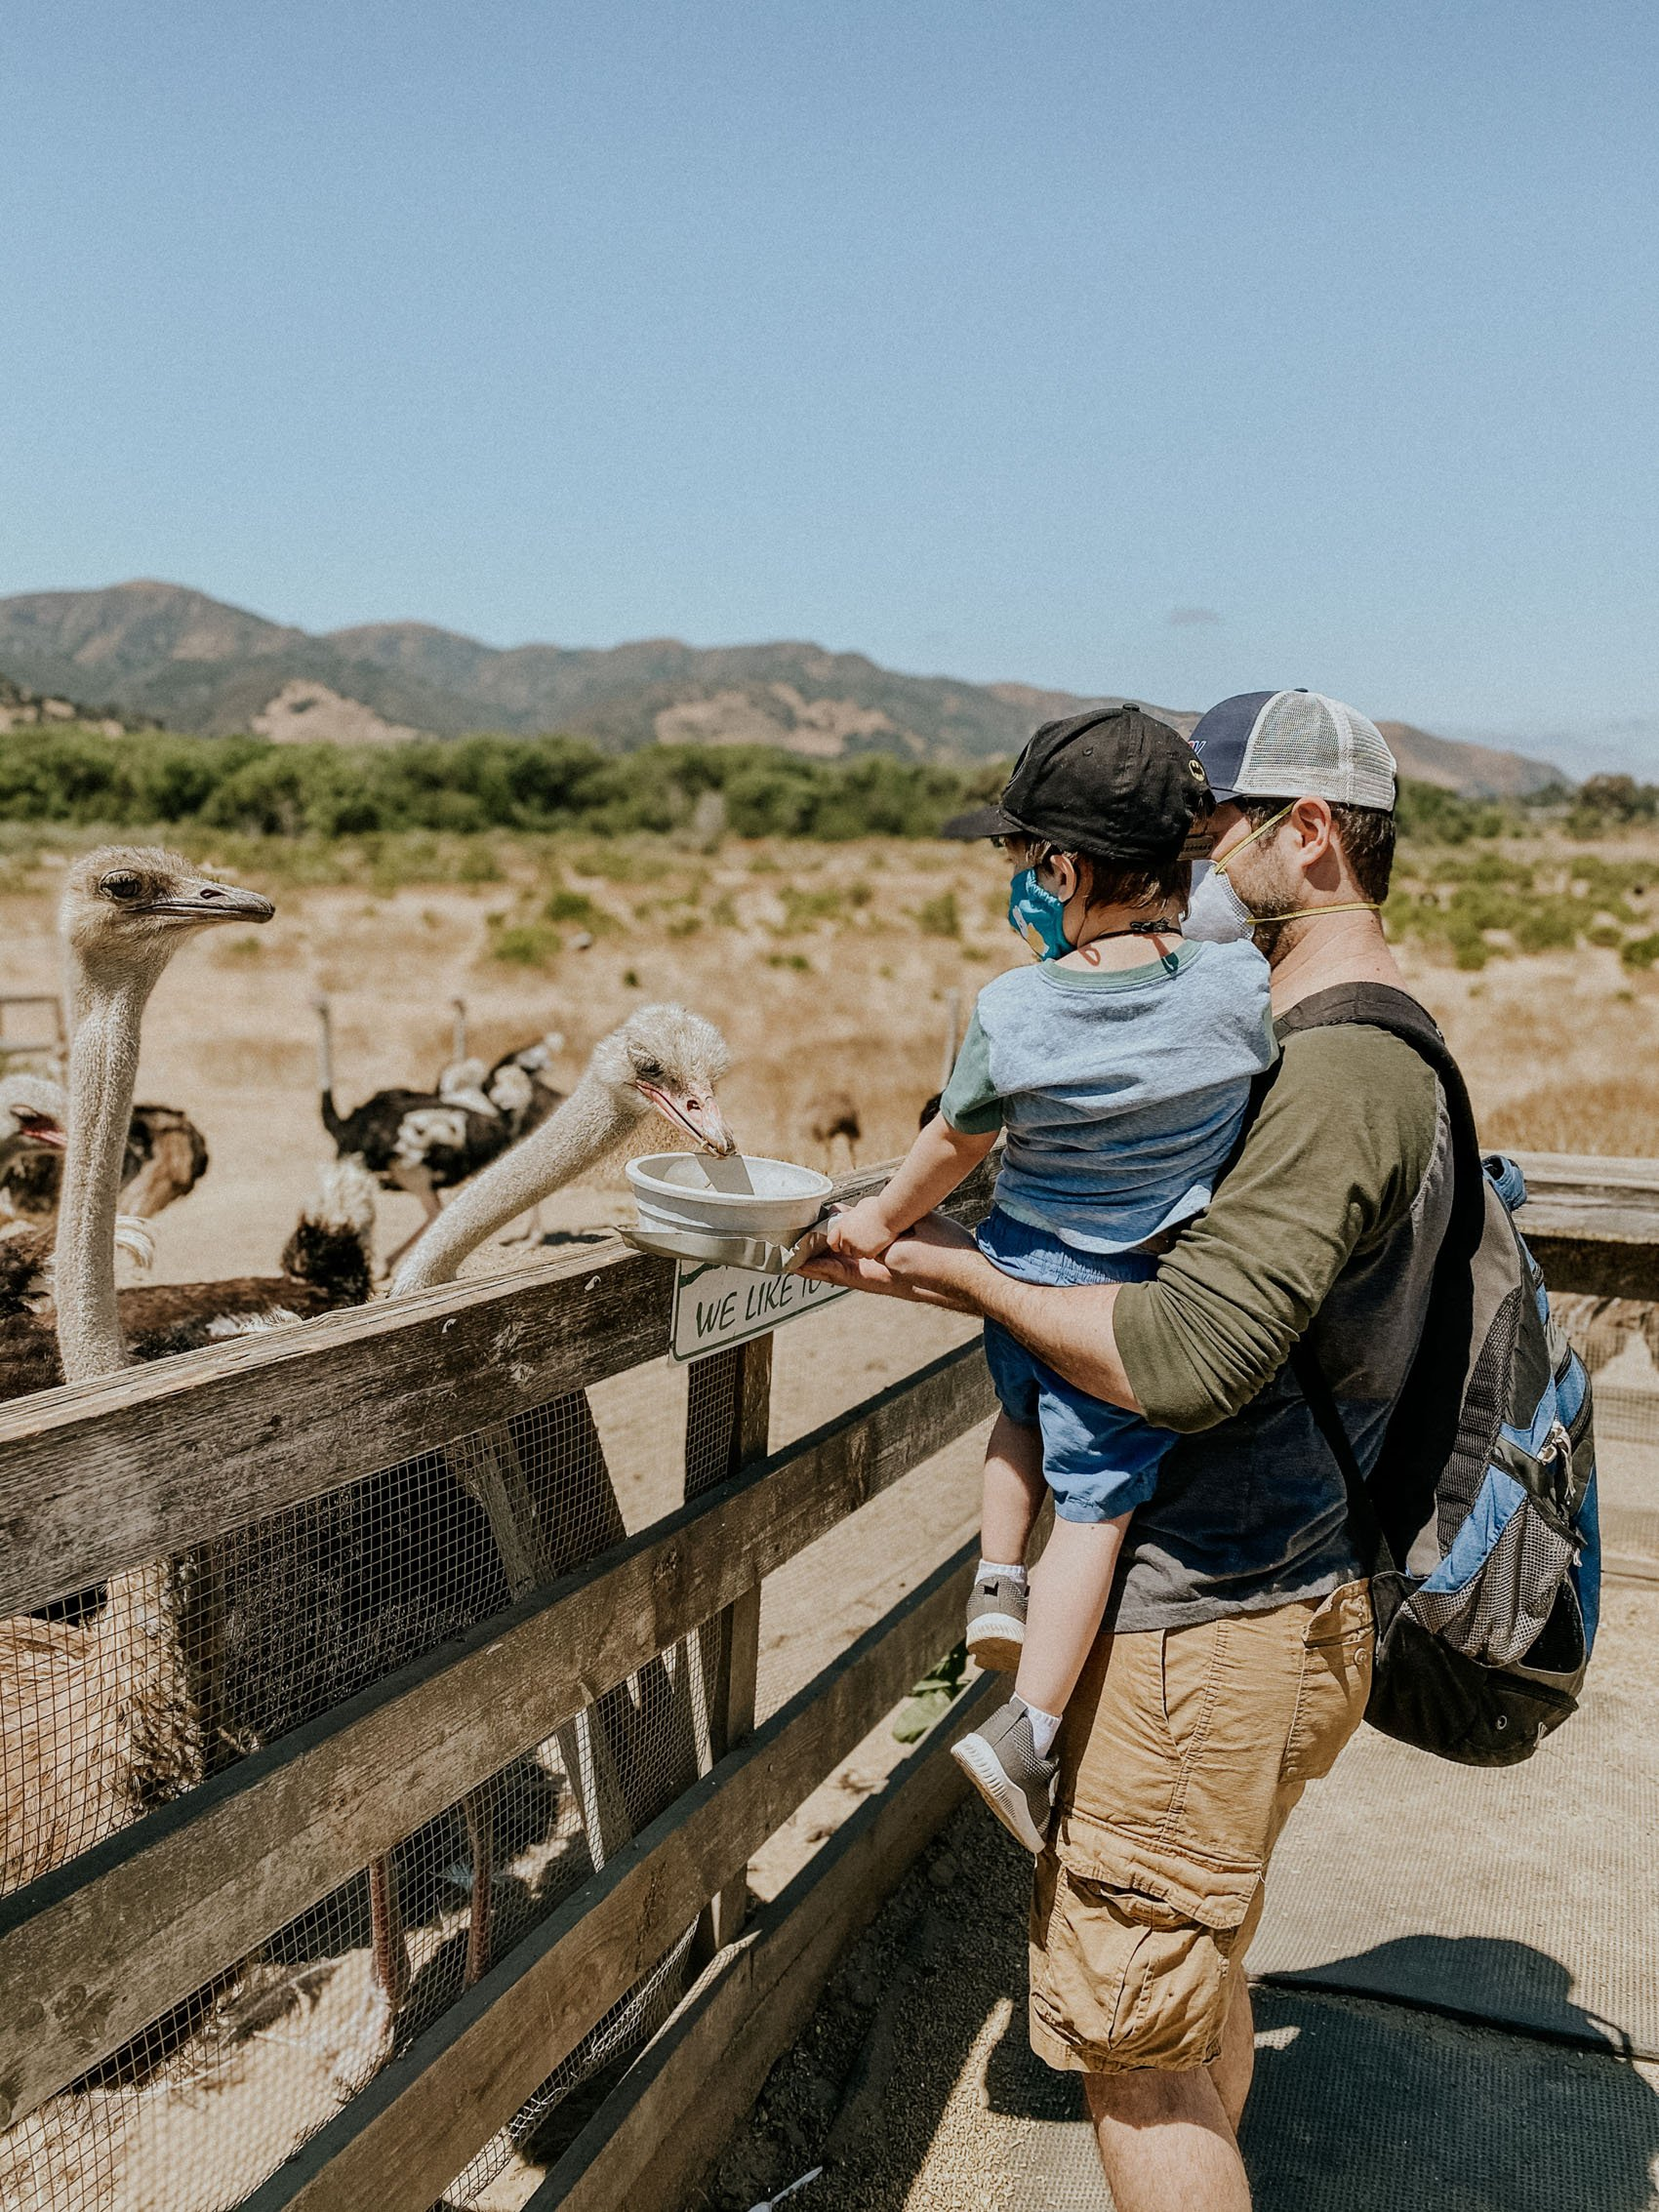 Feeding the Ostriches at Ostrichland USA